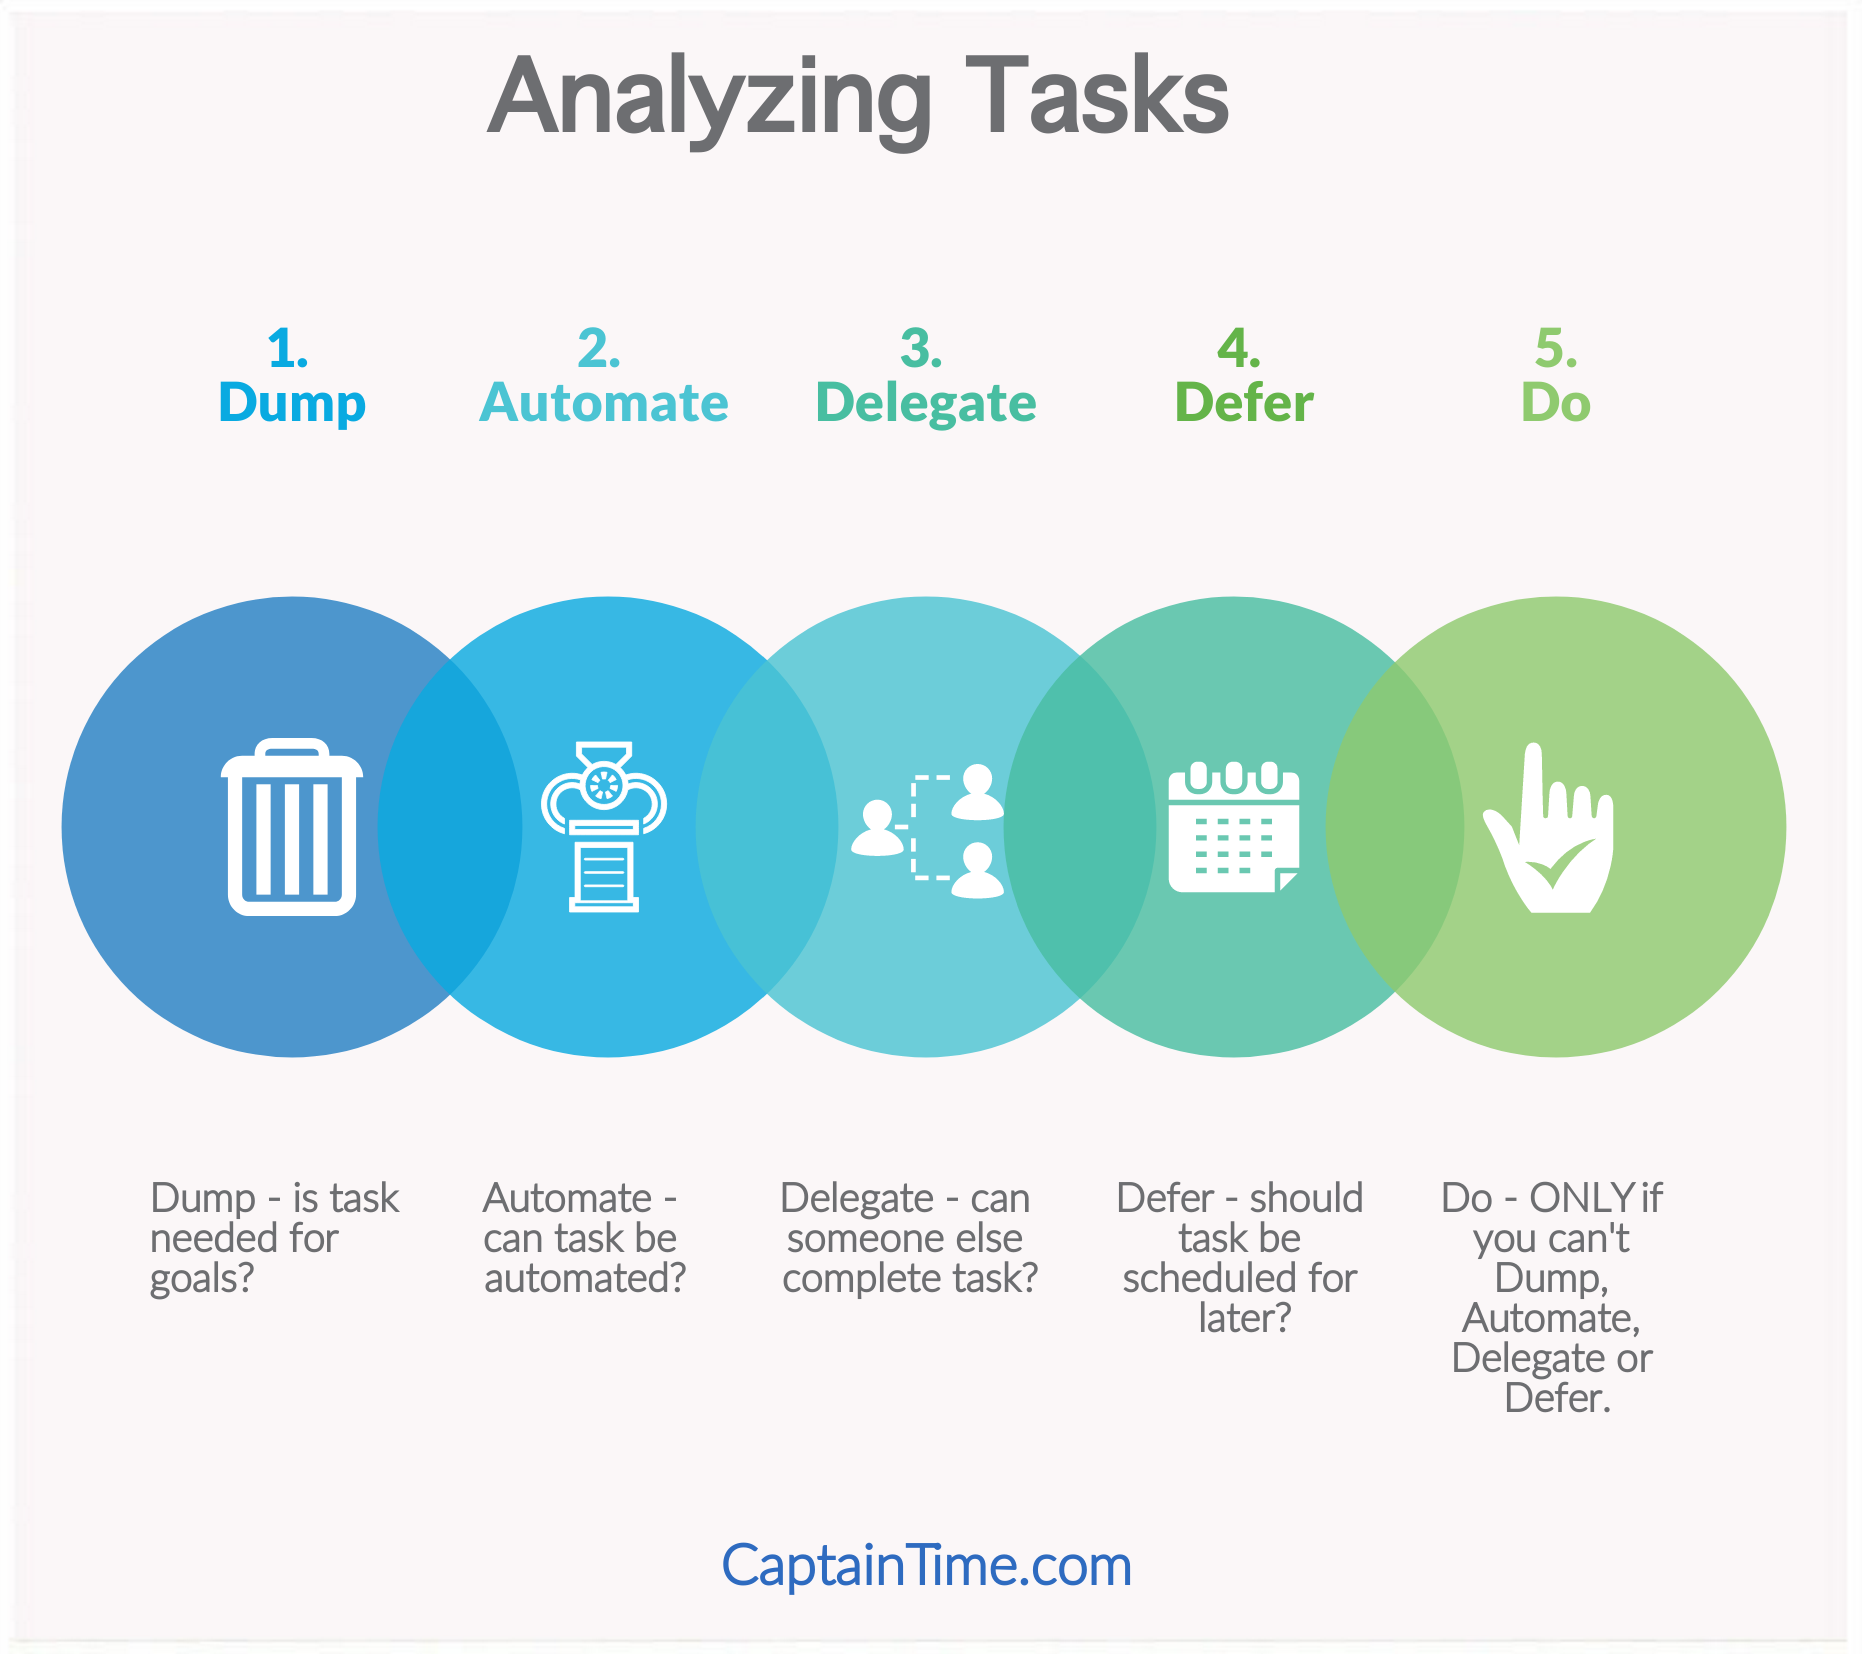 task analysis infographic